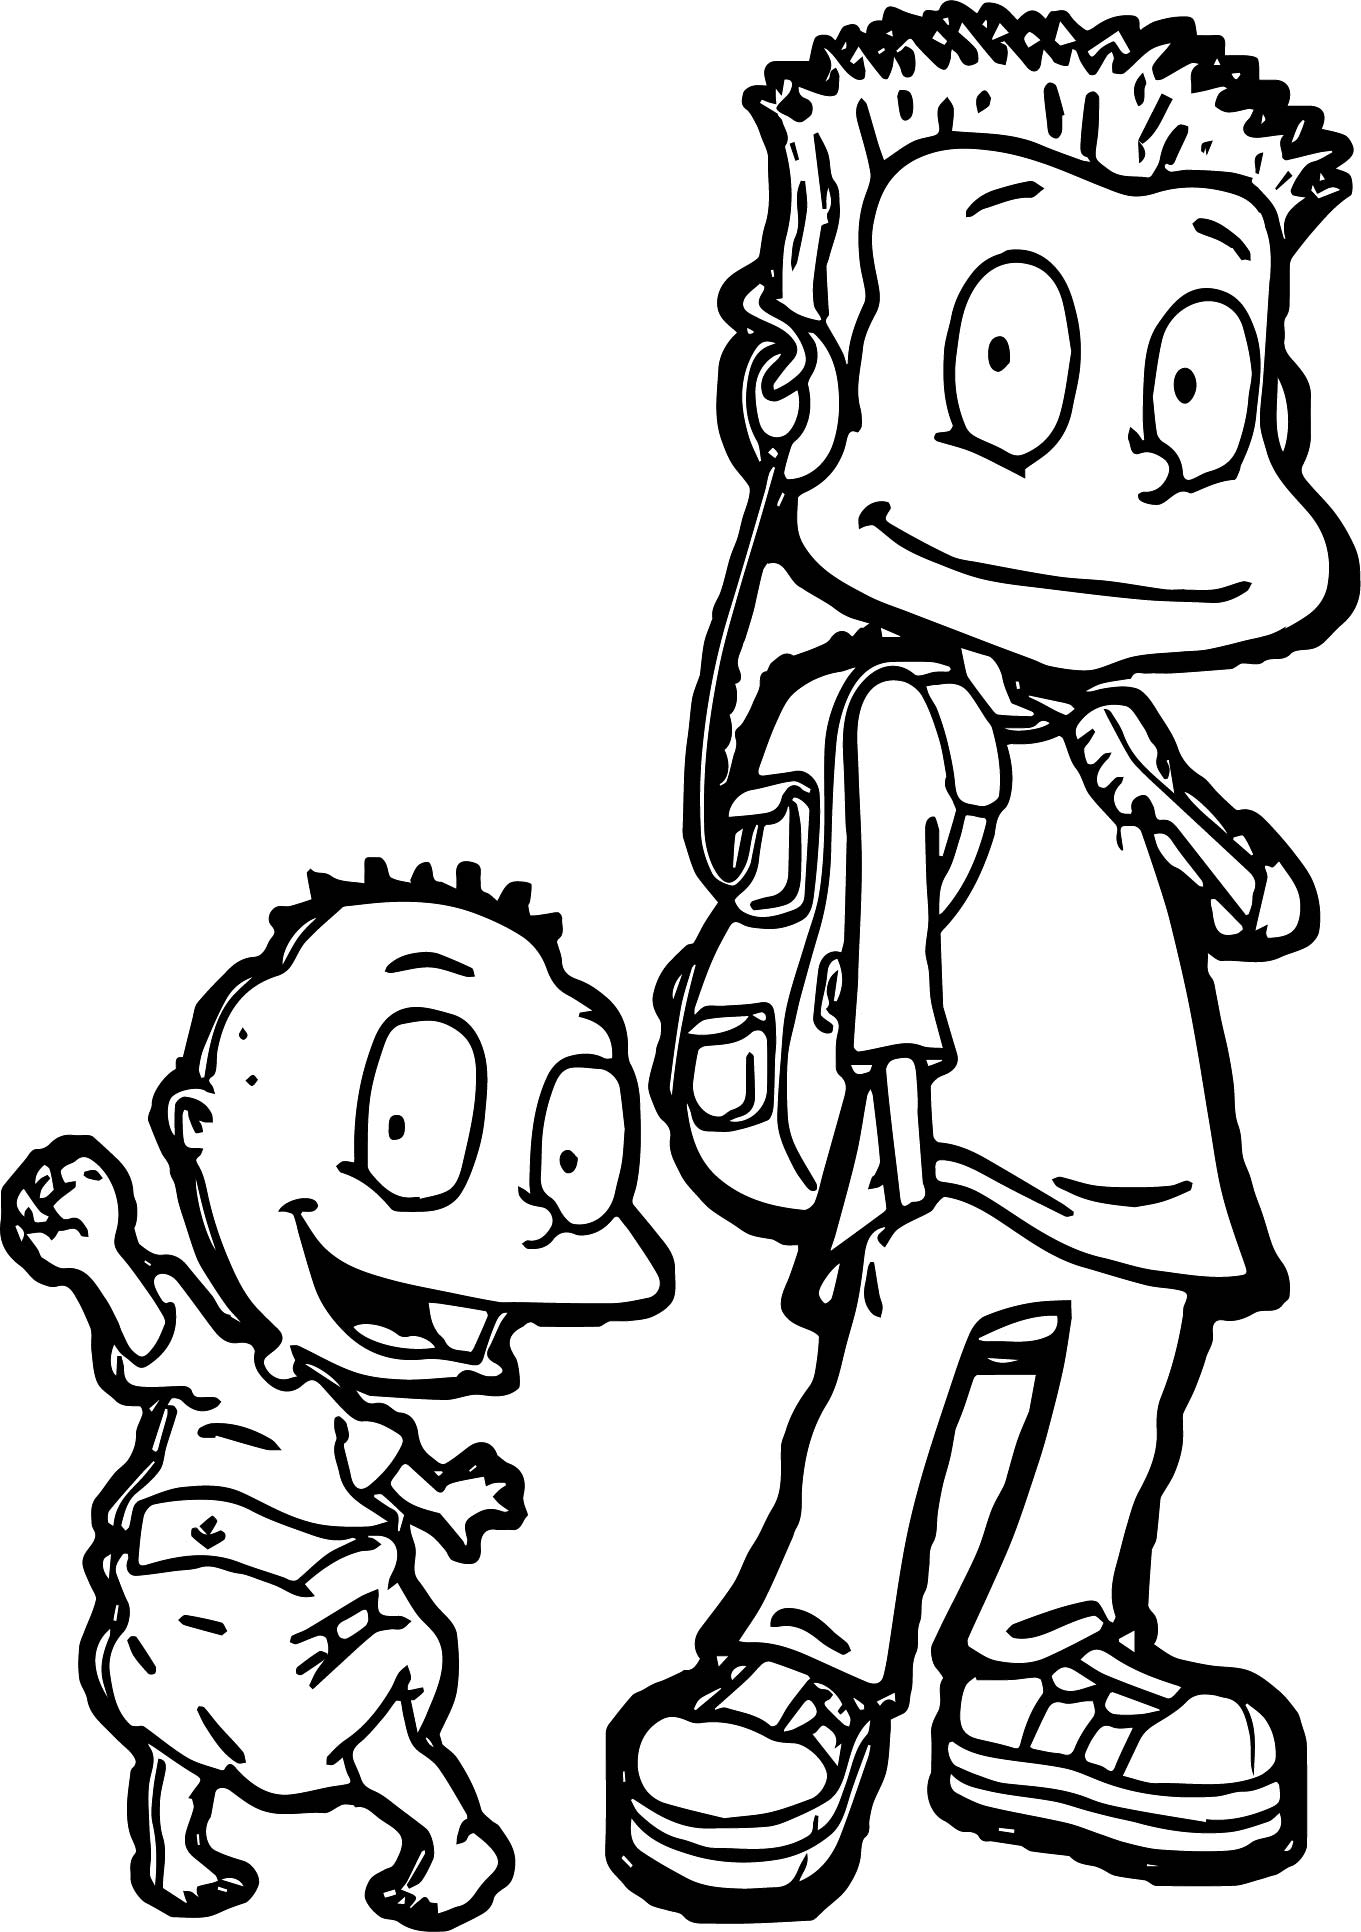 Chuckie Rugrats And Reptar Coloring Page